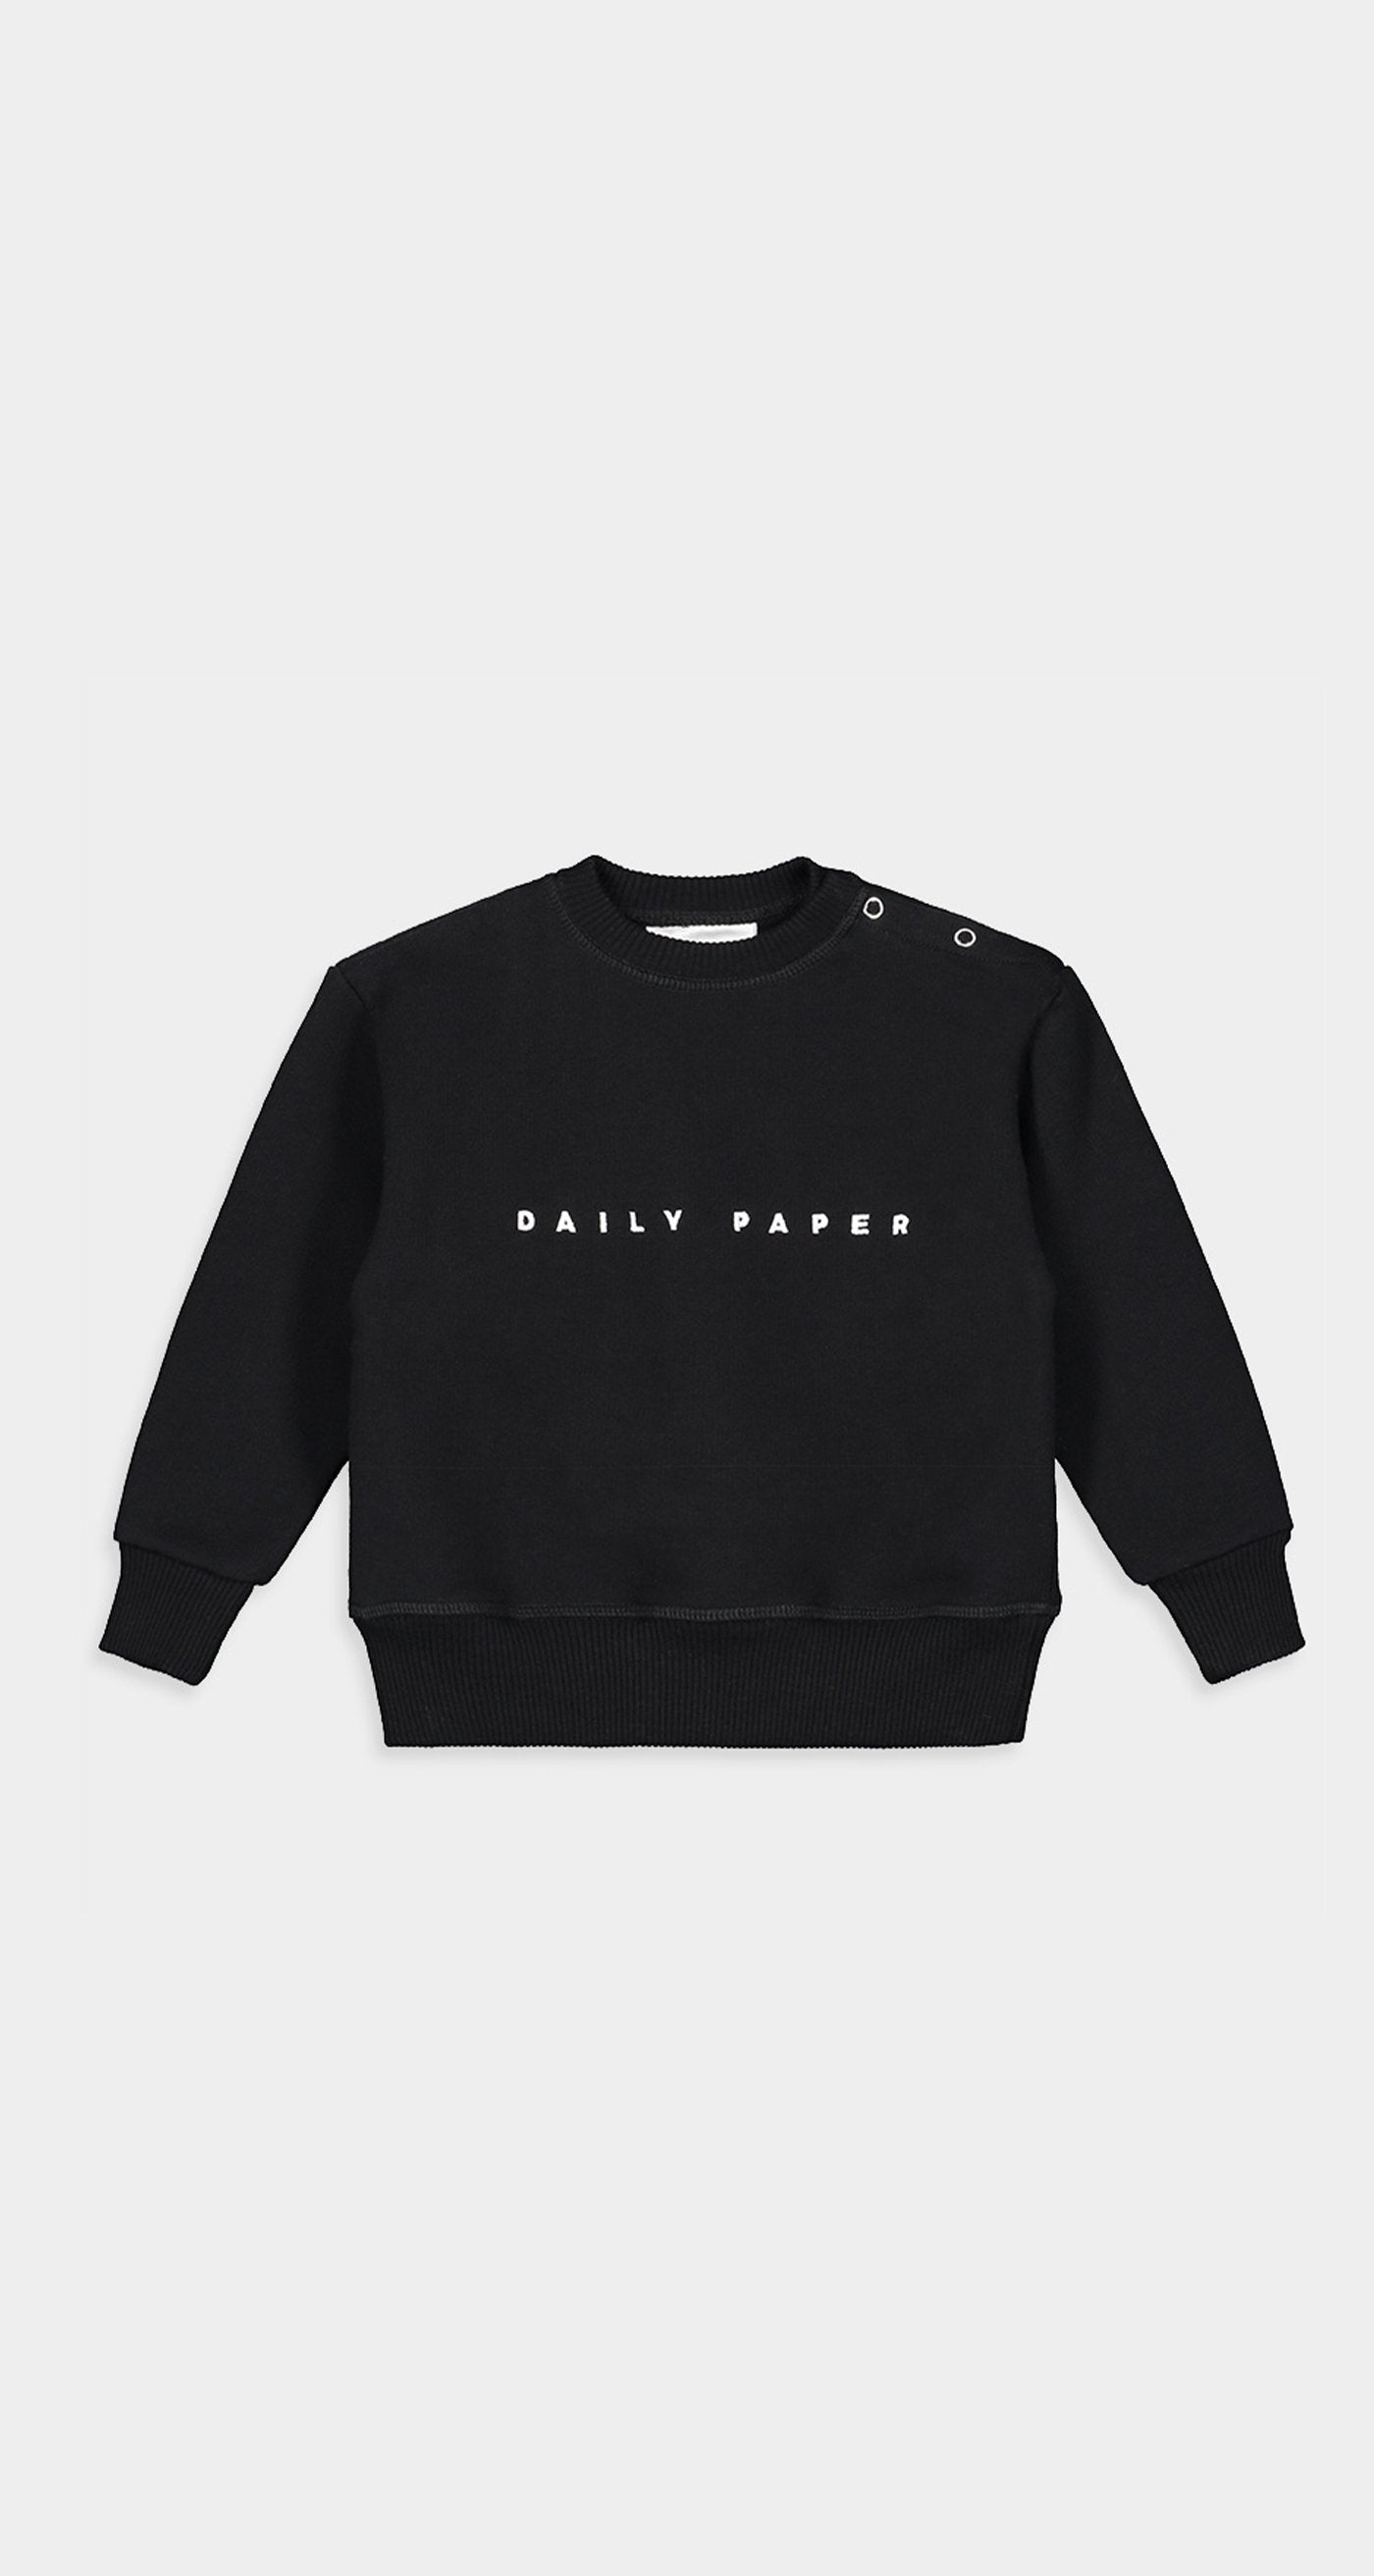 Daily Paper - Black Kids Alias Sweater Front